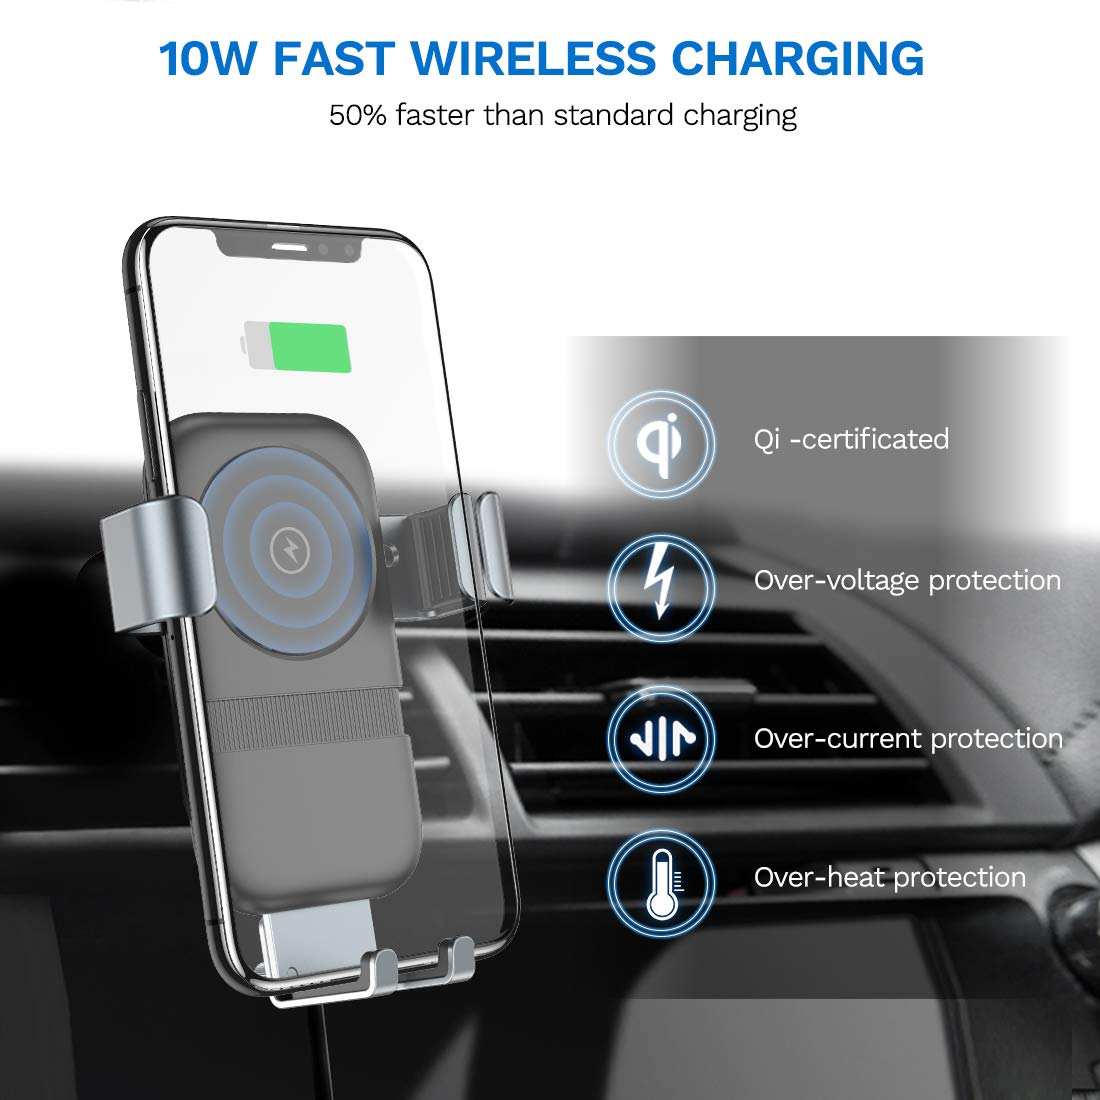 Andobil Wireless Car Charger Mount, Auto-Clamping Gravity Sensor Cell Phone Holder, 10W /7.5W Power Qi Fast Charging Compatible iPhone 11 Pro Max XR Xs X 8, S10 S9 Note 10 9